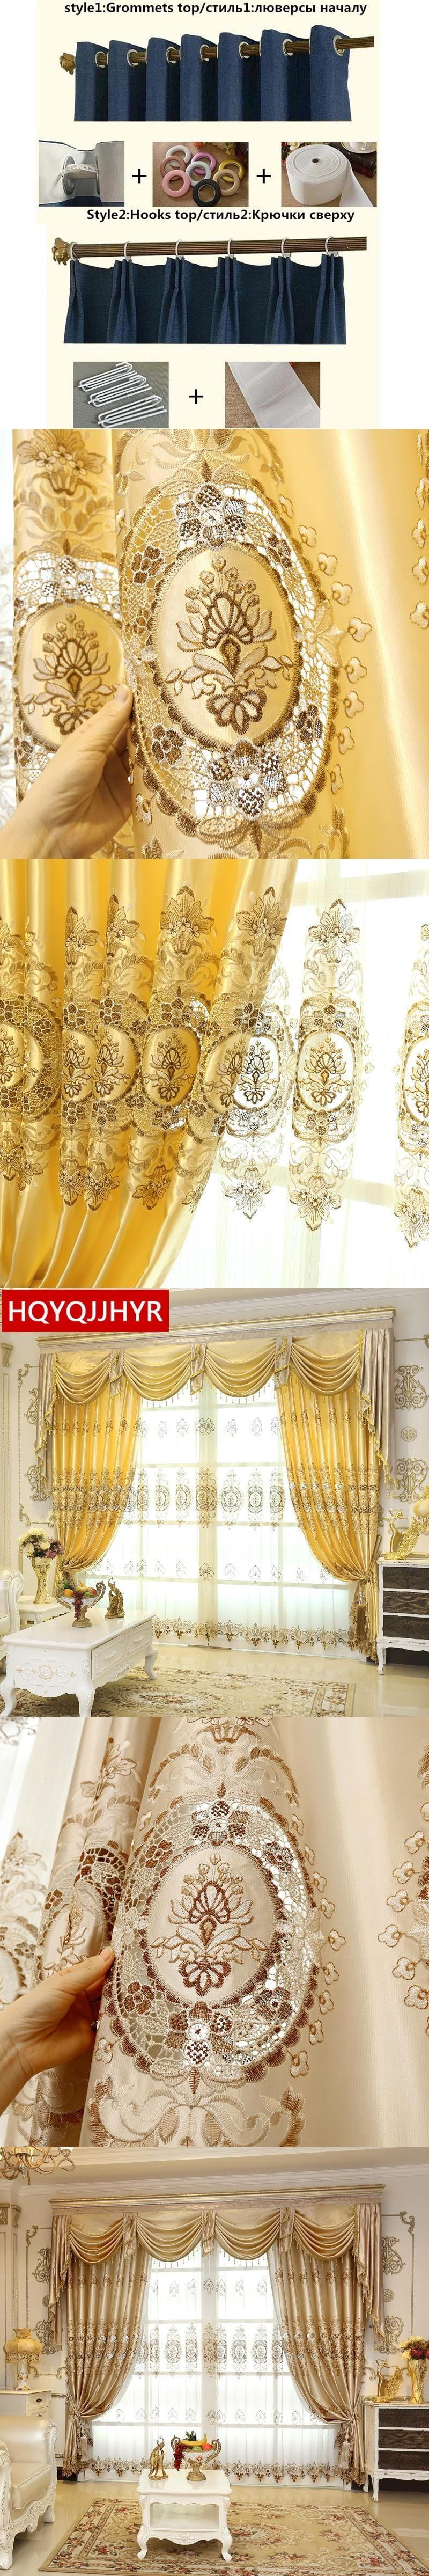 Classic european luxury water soluble embroidery curtains for living